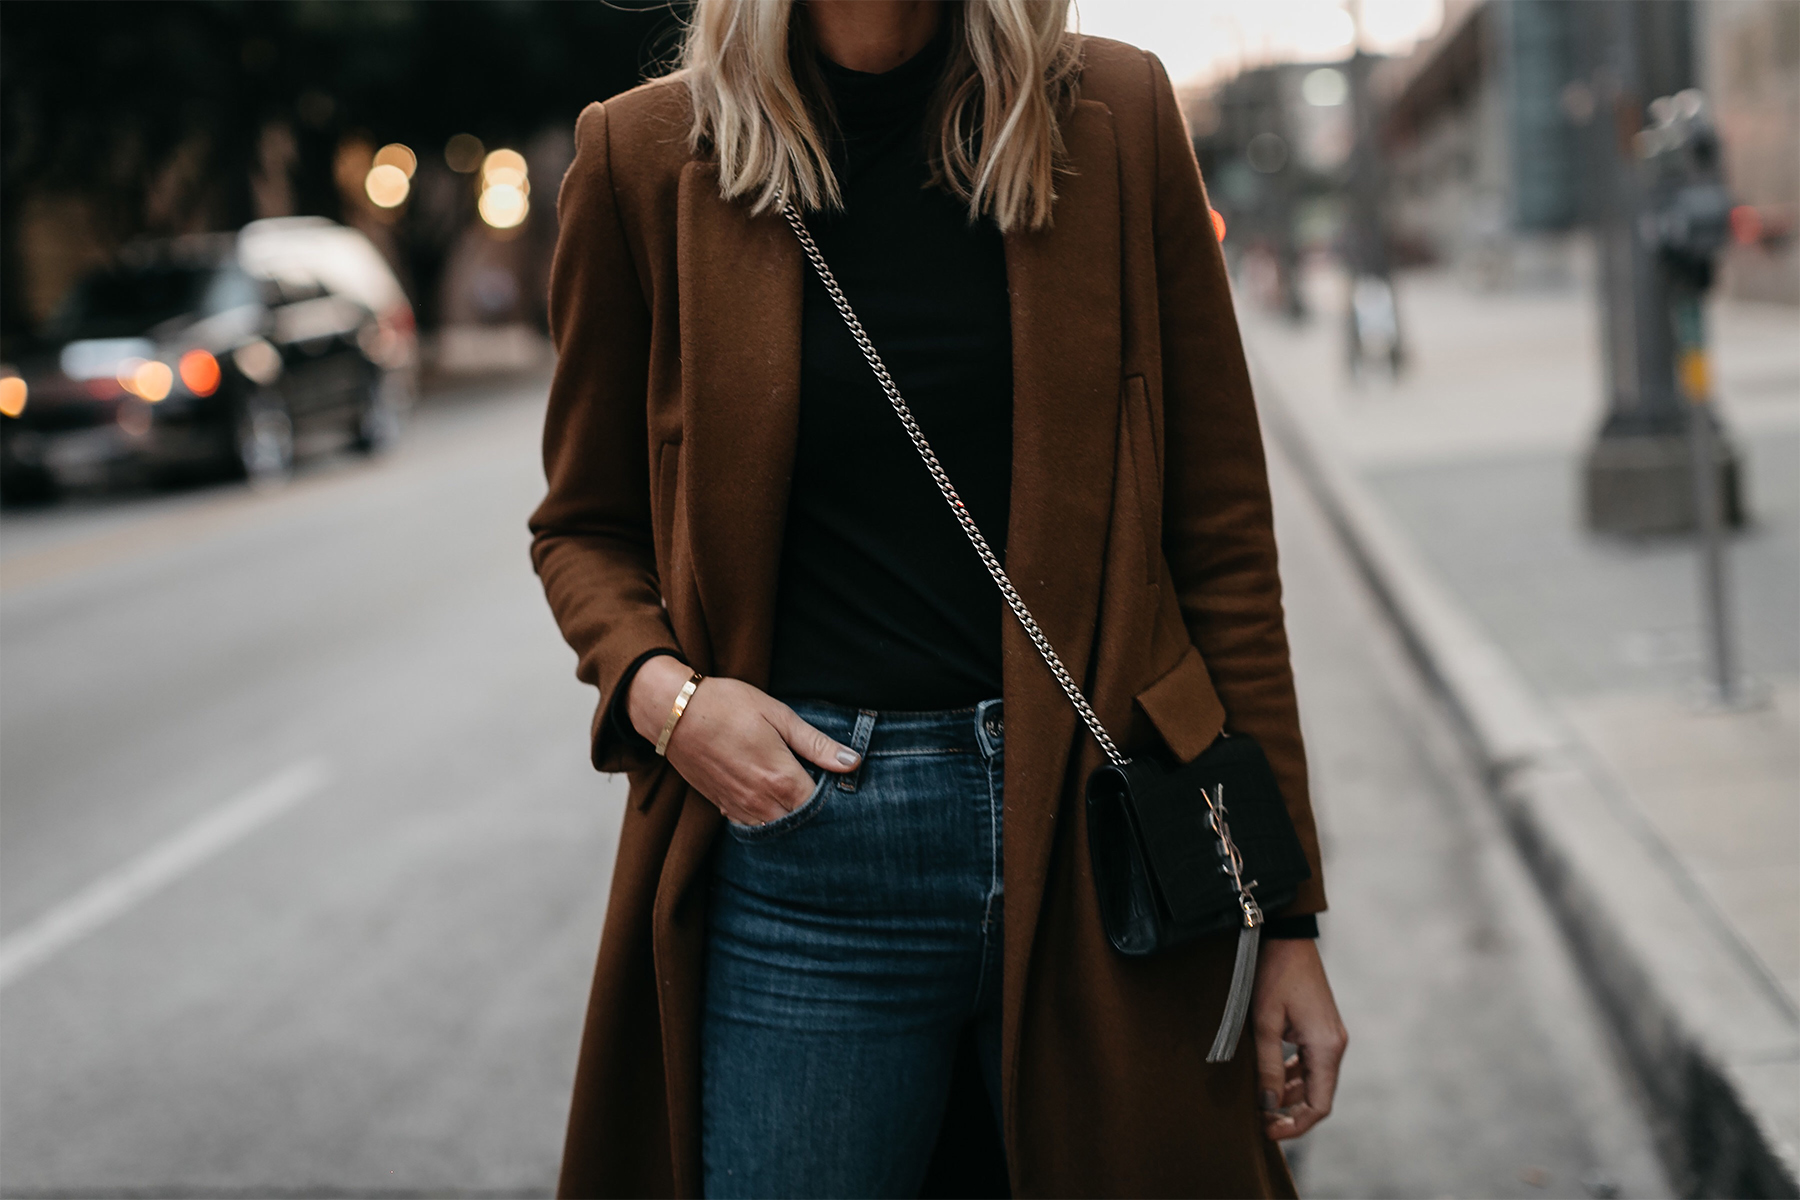 Camel Wool Coat Saint Laurent Crossbody Black Turtleneck Fashion Jackson Dallas Blogger Fashion Blogger Street Style